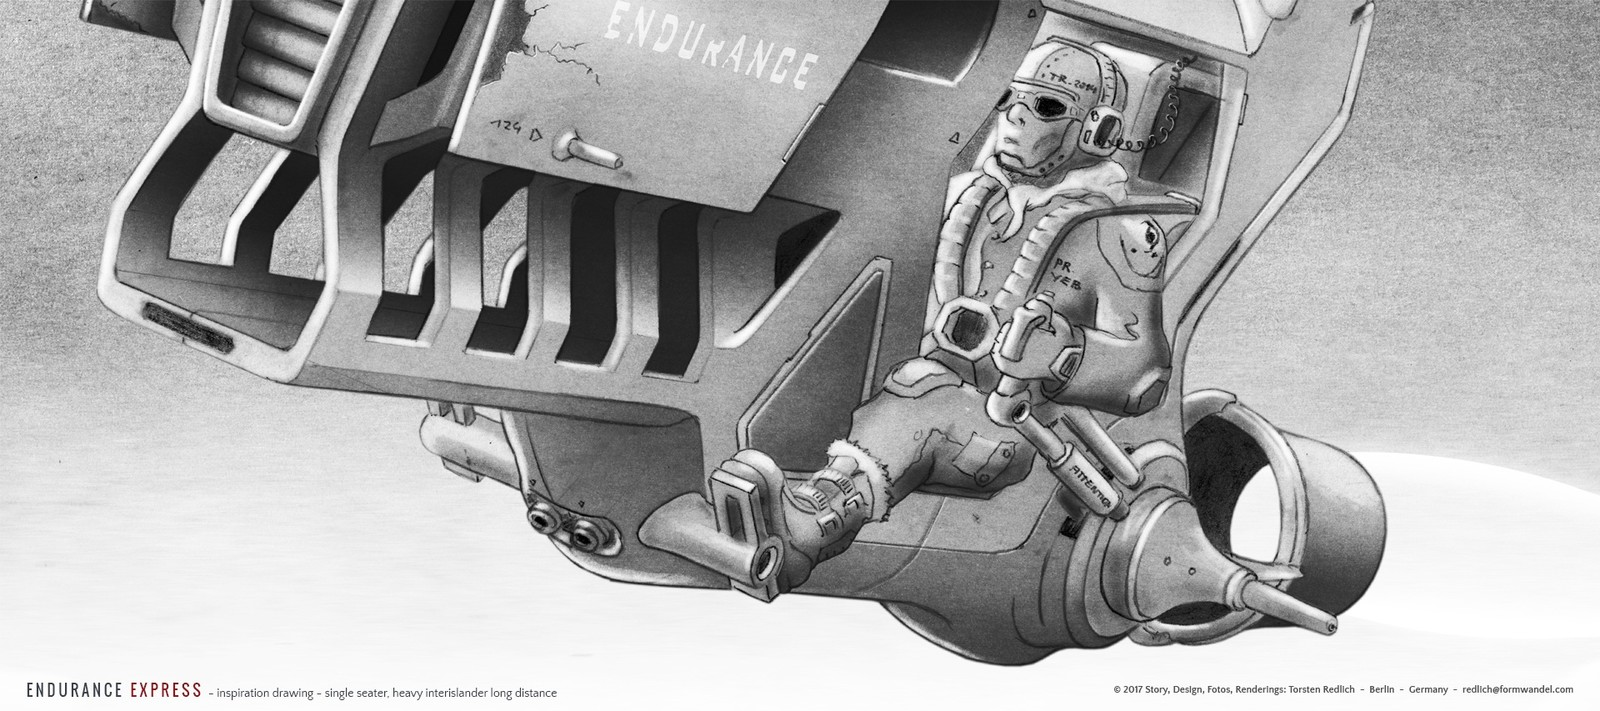 ENDURANCE EXPRESS - Inspiration drawing